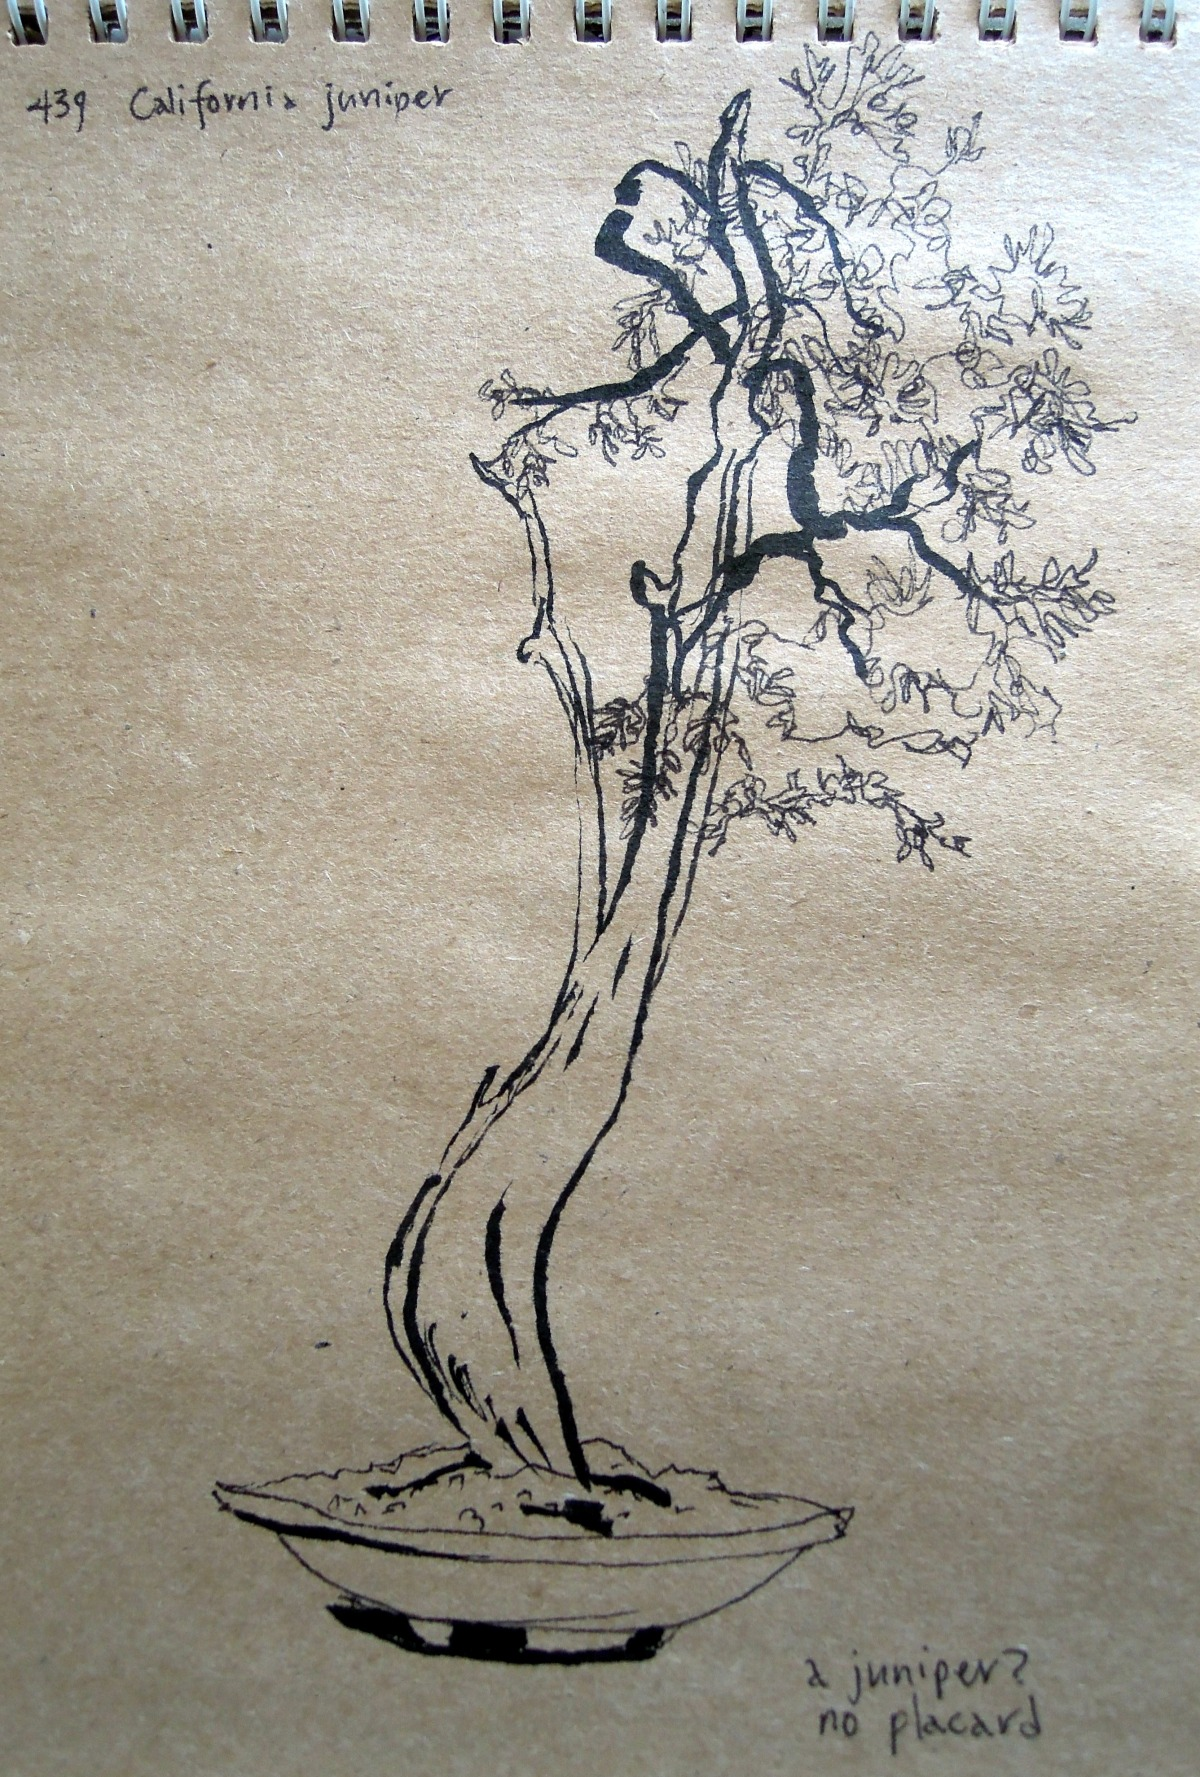 Sketch of California juniper at the Bonsai Garden of Lake Merritt, Oakland